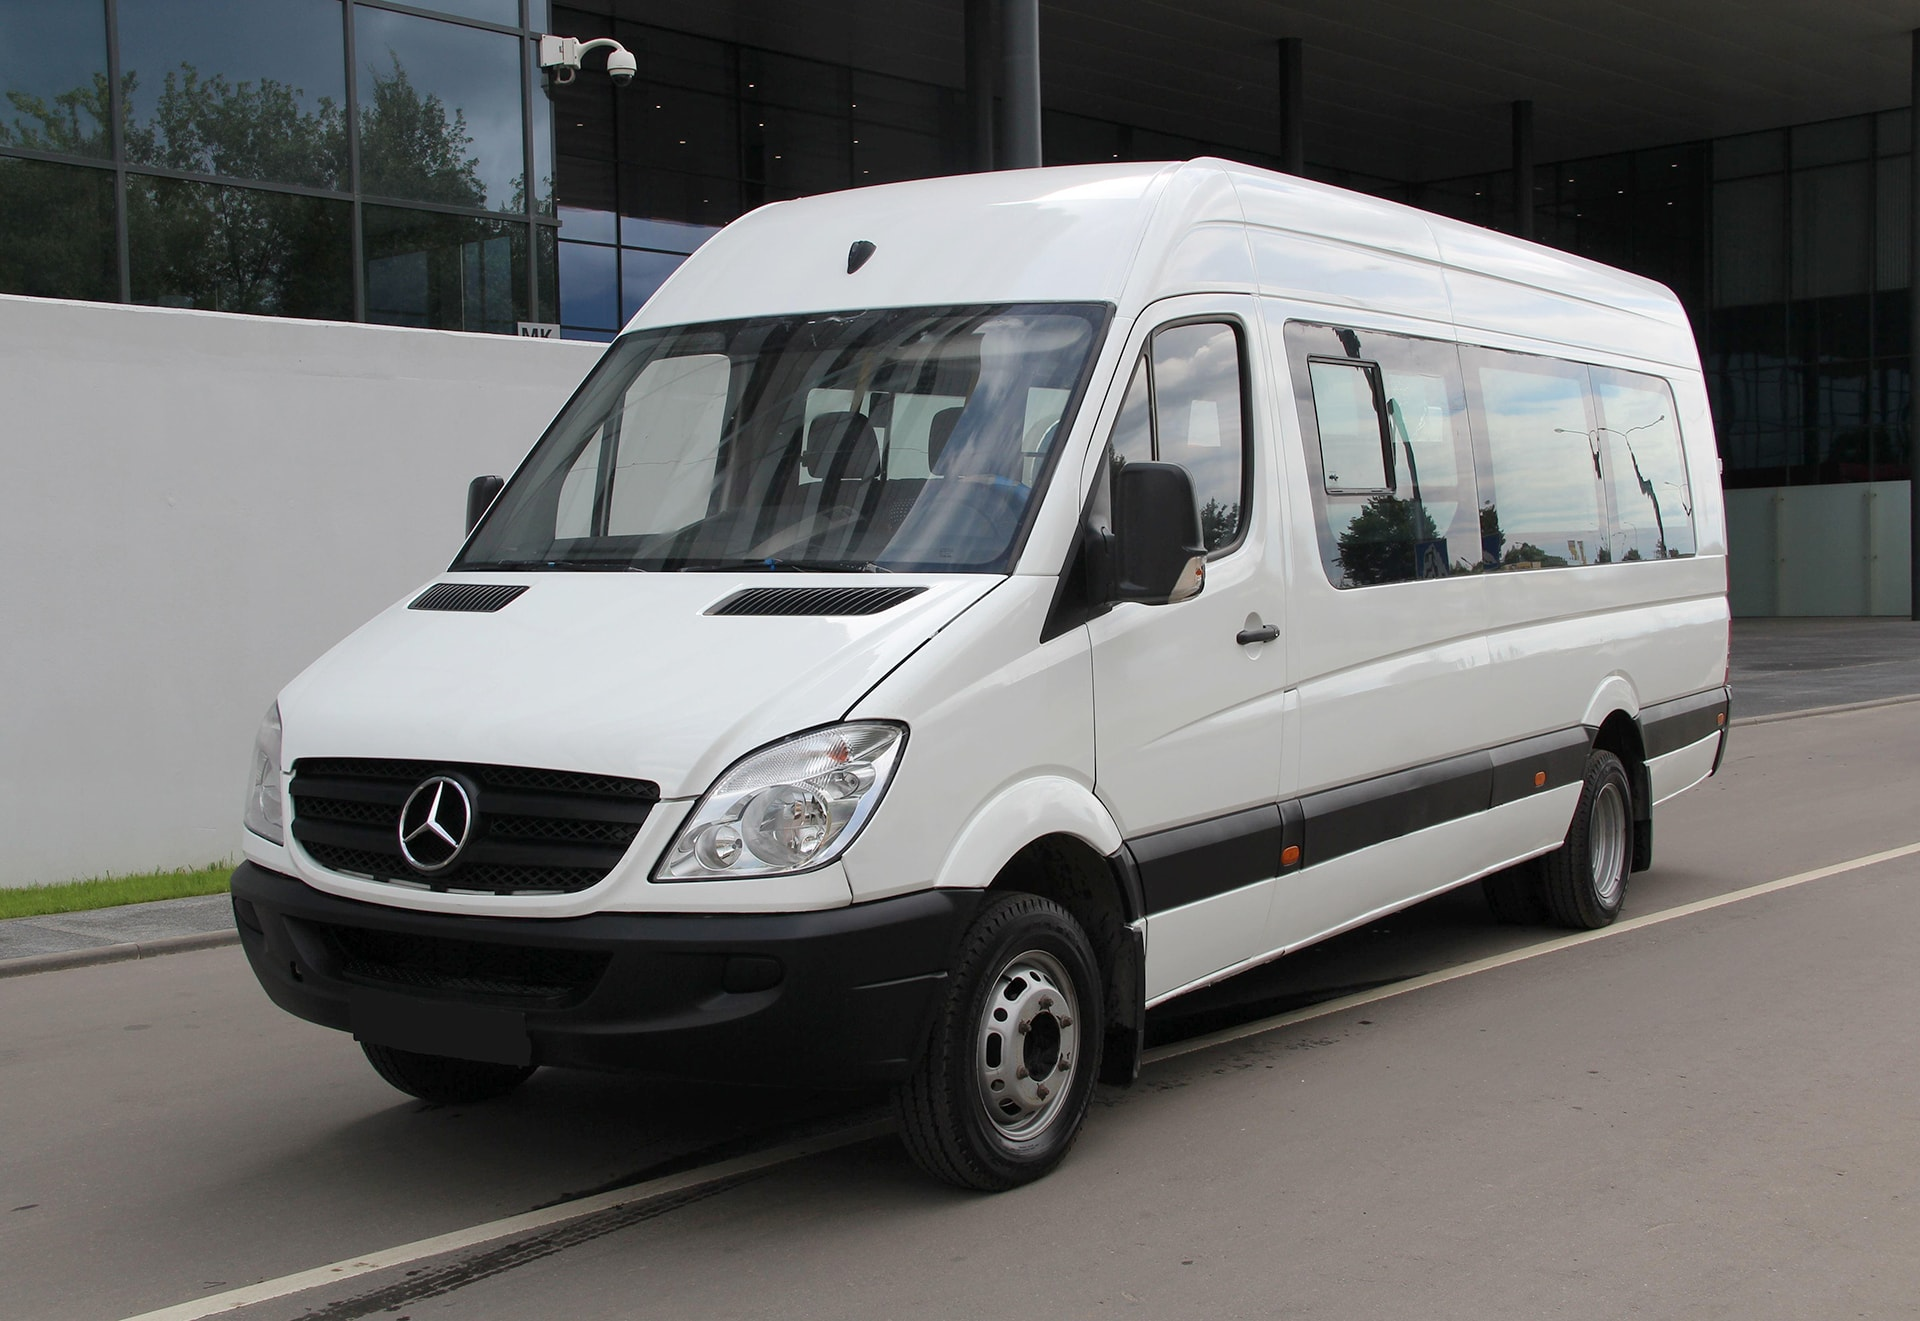 Mercedes benz sprinter lease in astana toplimo kz for Mercedes benz lease terms